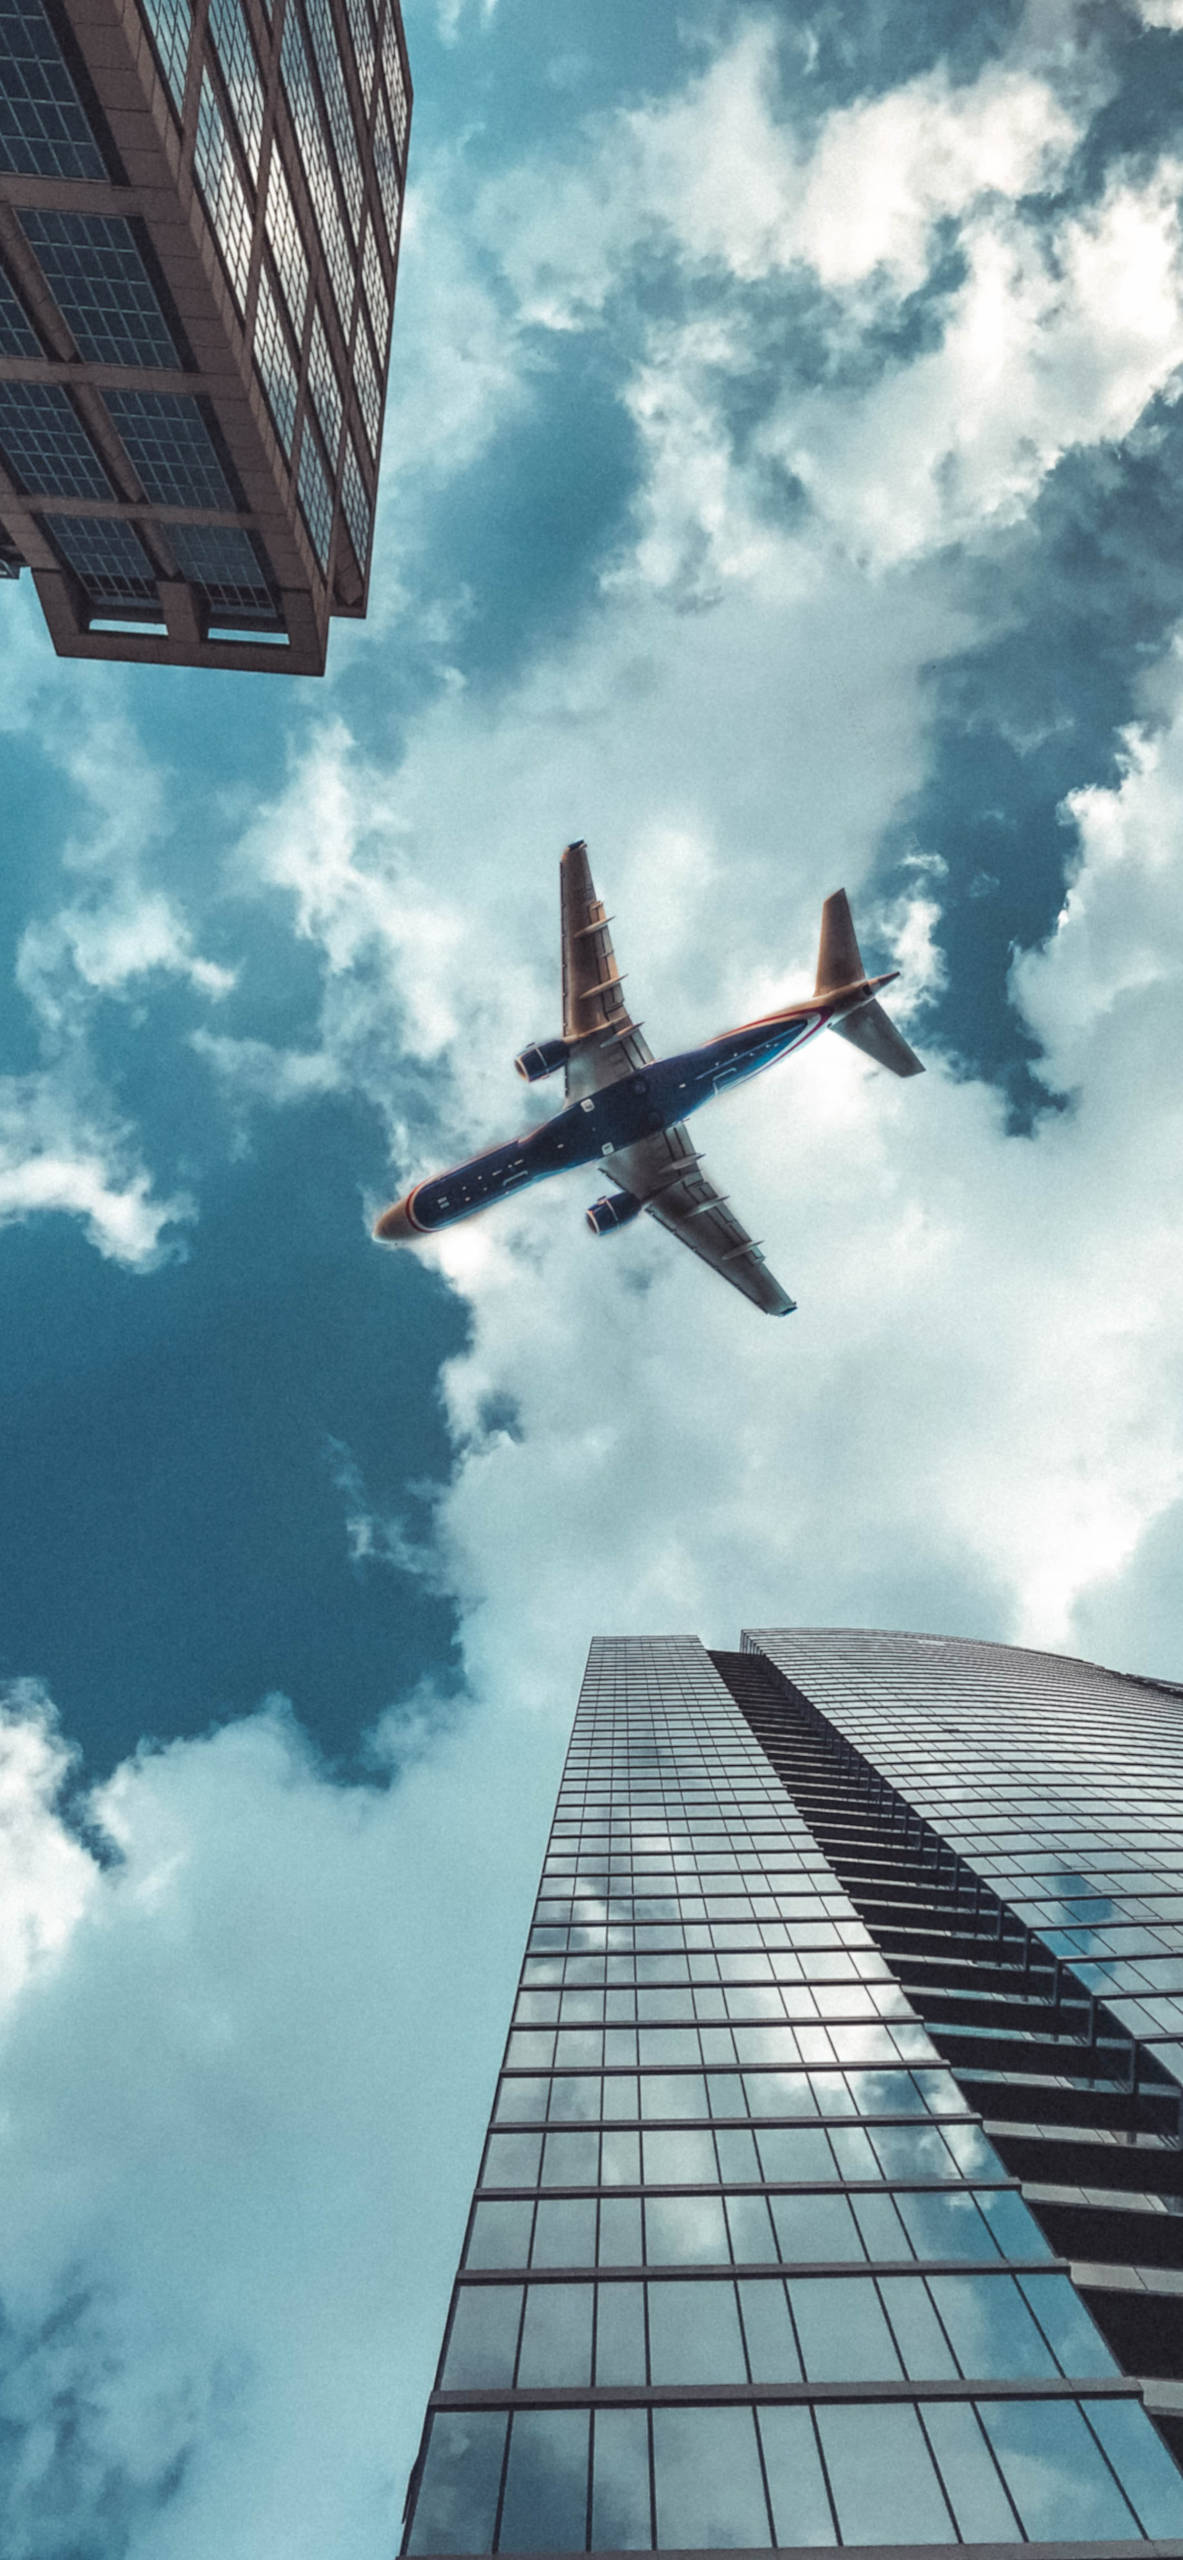 iPhone wallpapers airplane midle buildings Airplane